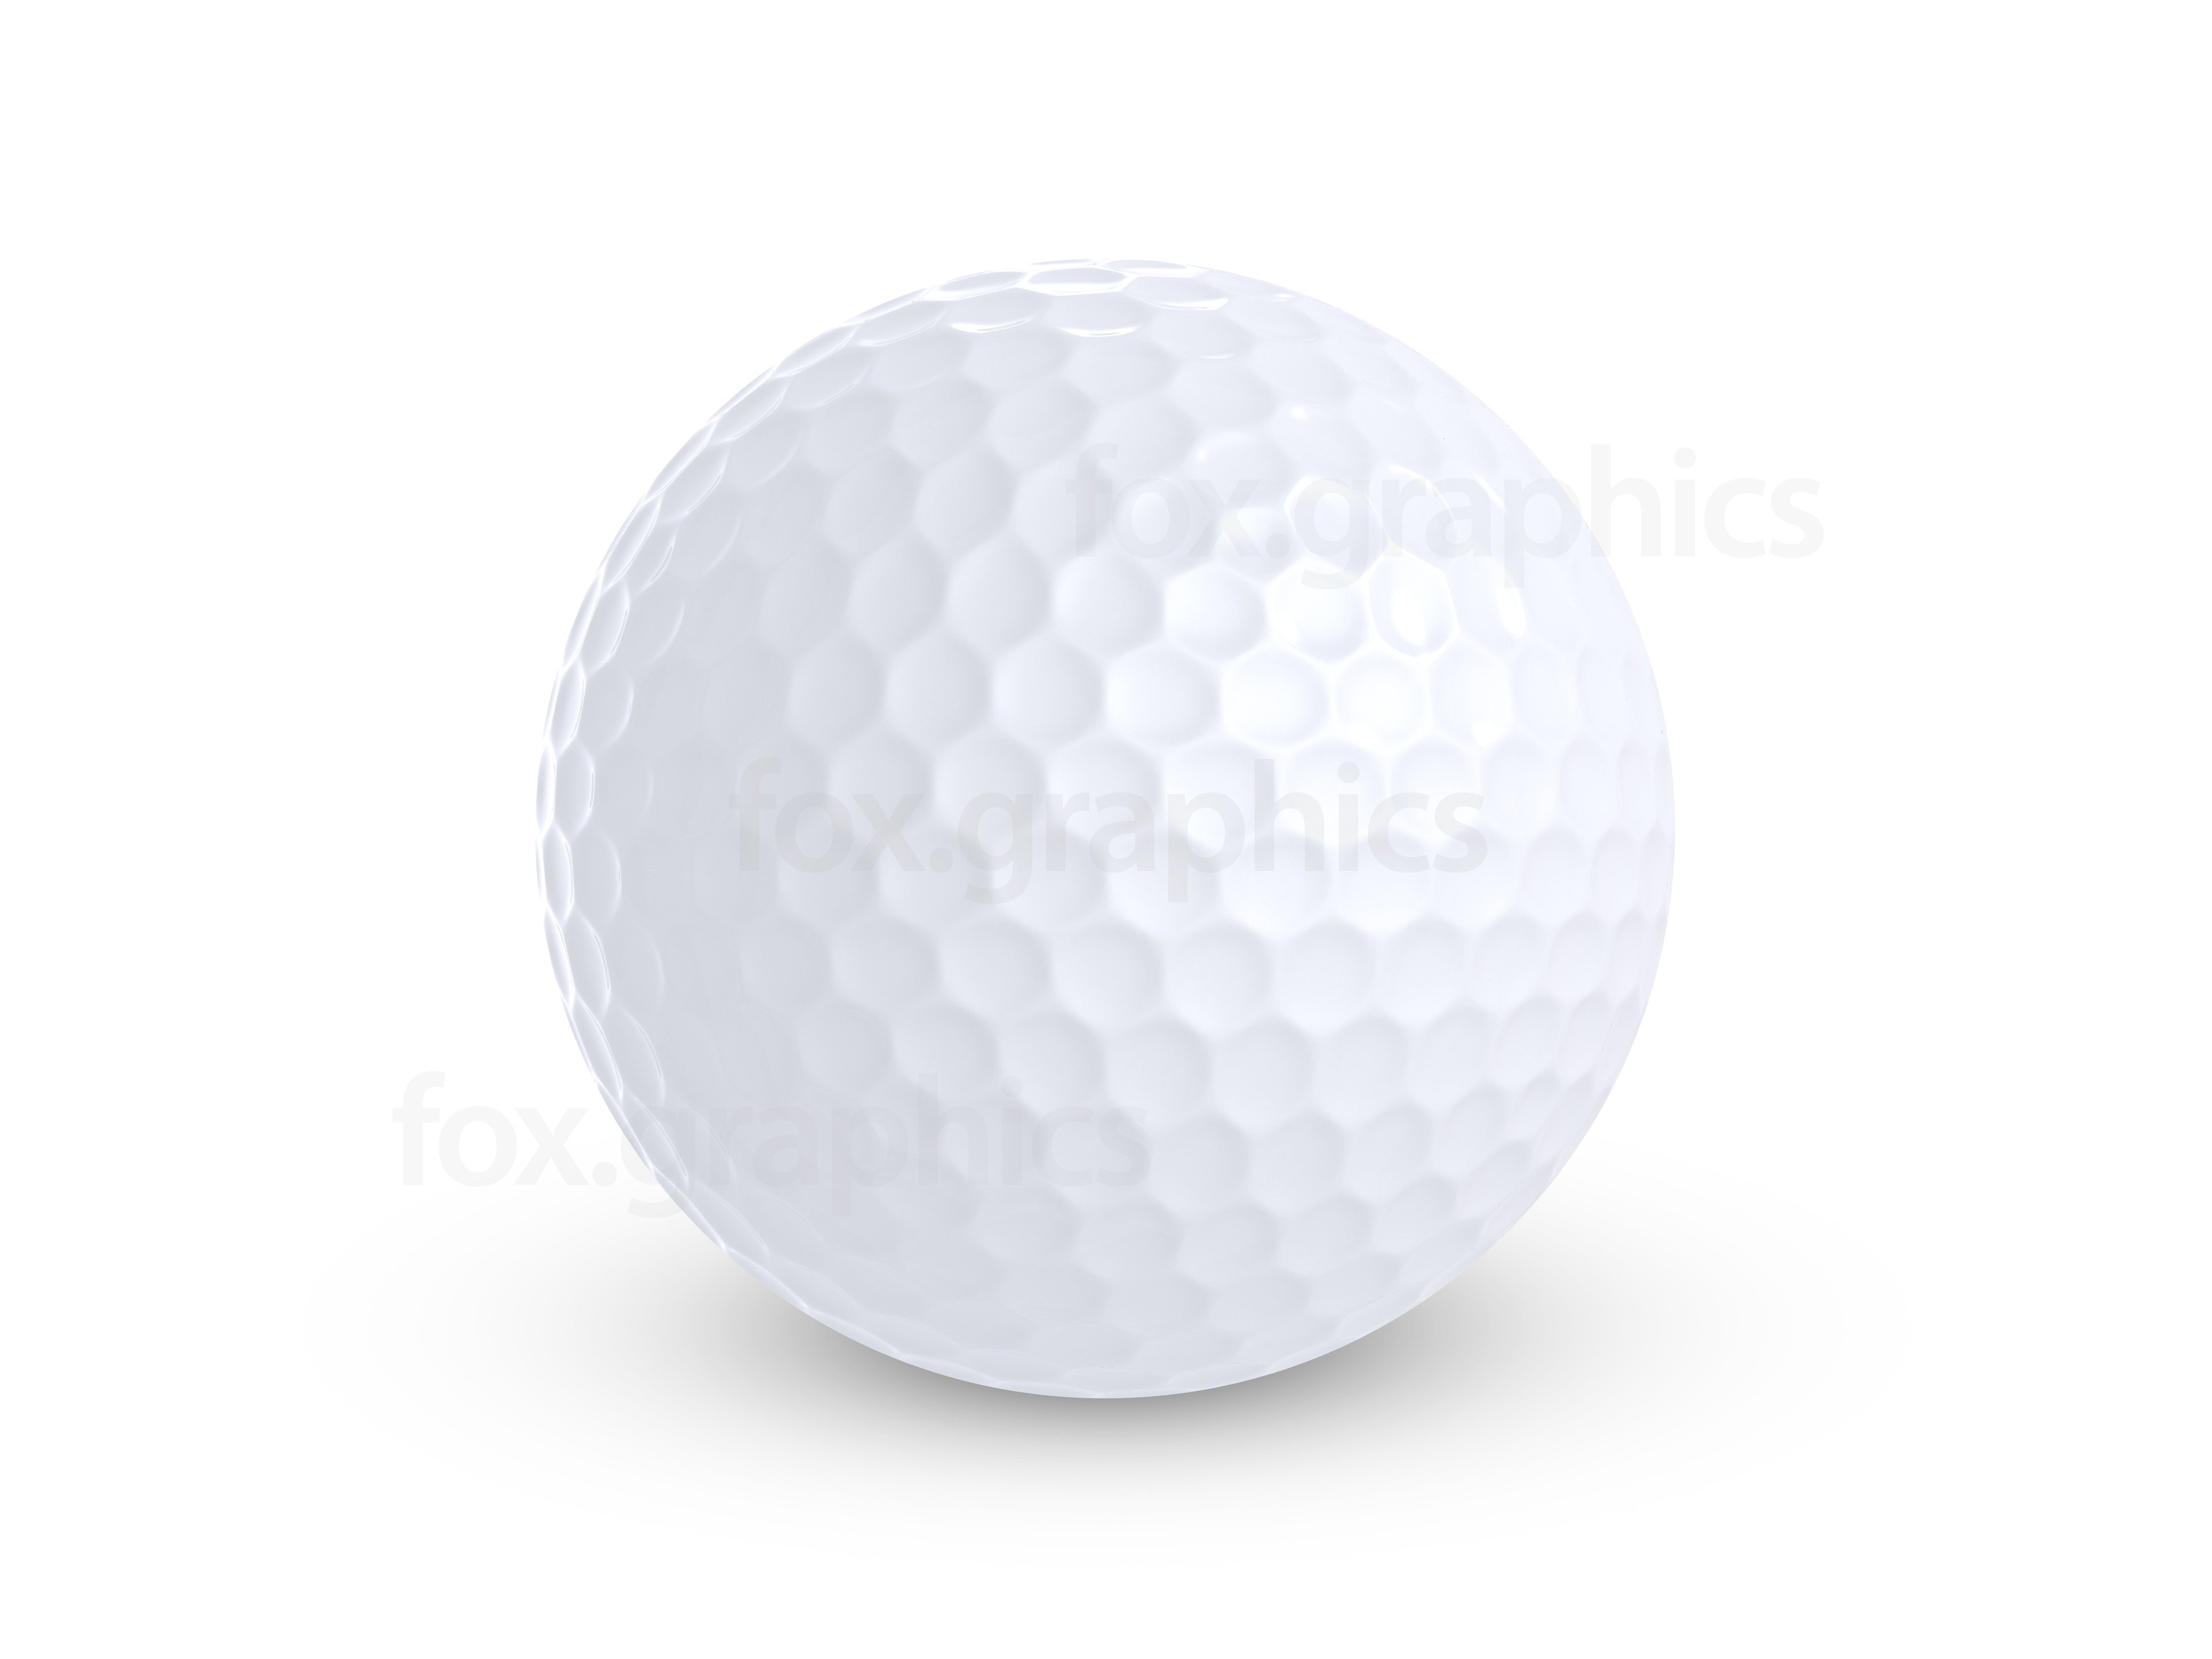 PNG Golf Ball Transparent Golf Ball.PNG Images..